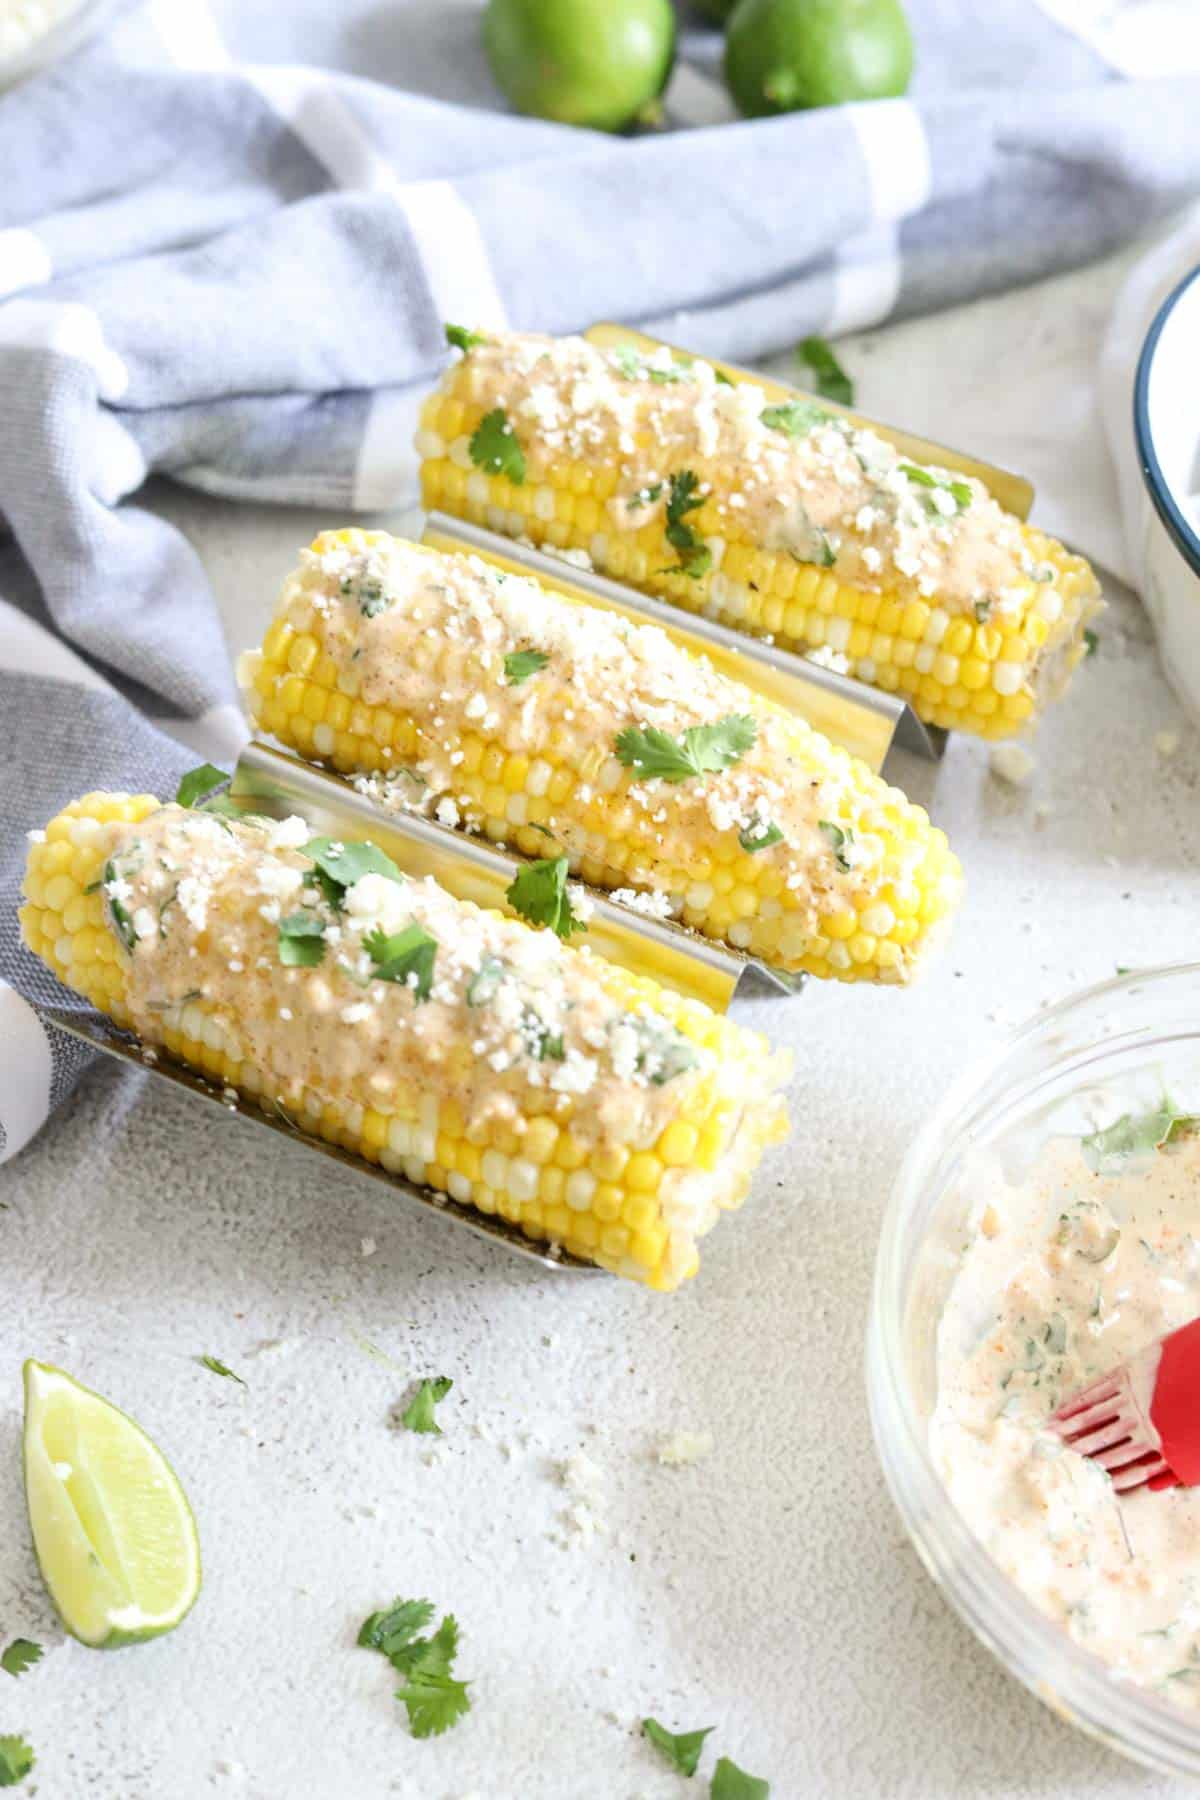 Mexican street corn elote with sauce and cilantro